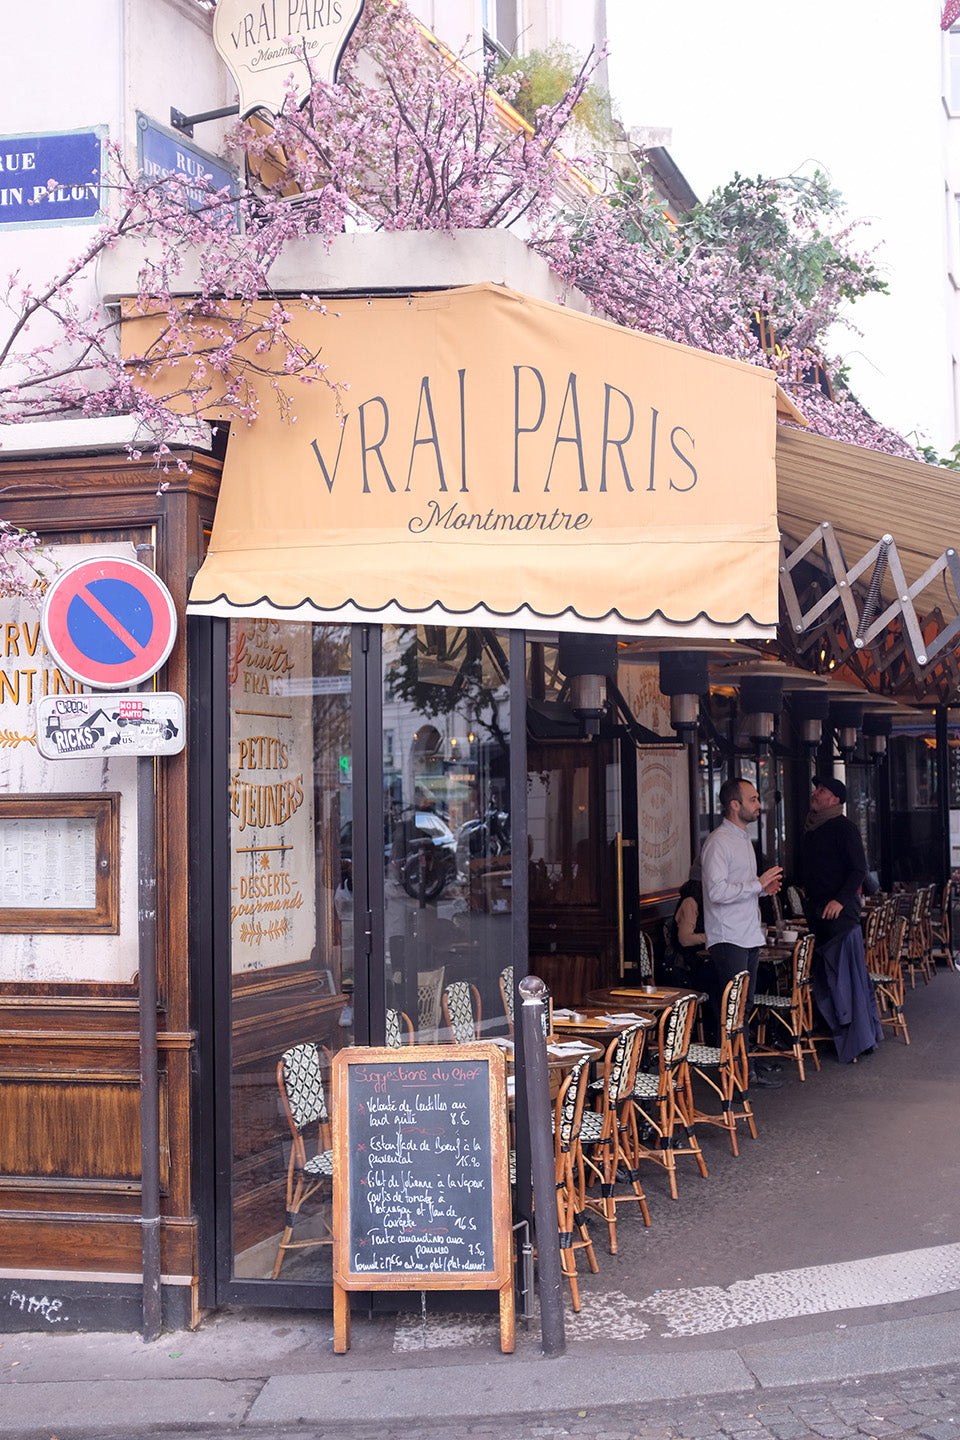 Le Vrai Paris in Montmartre